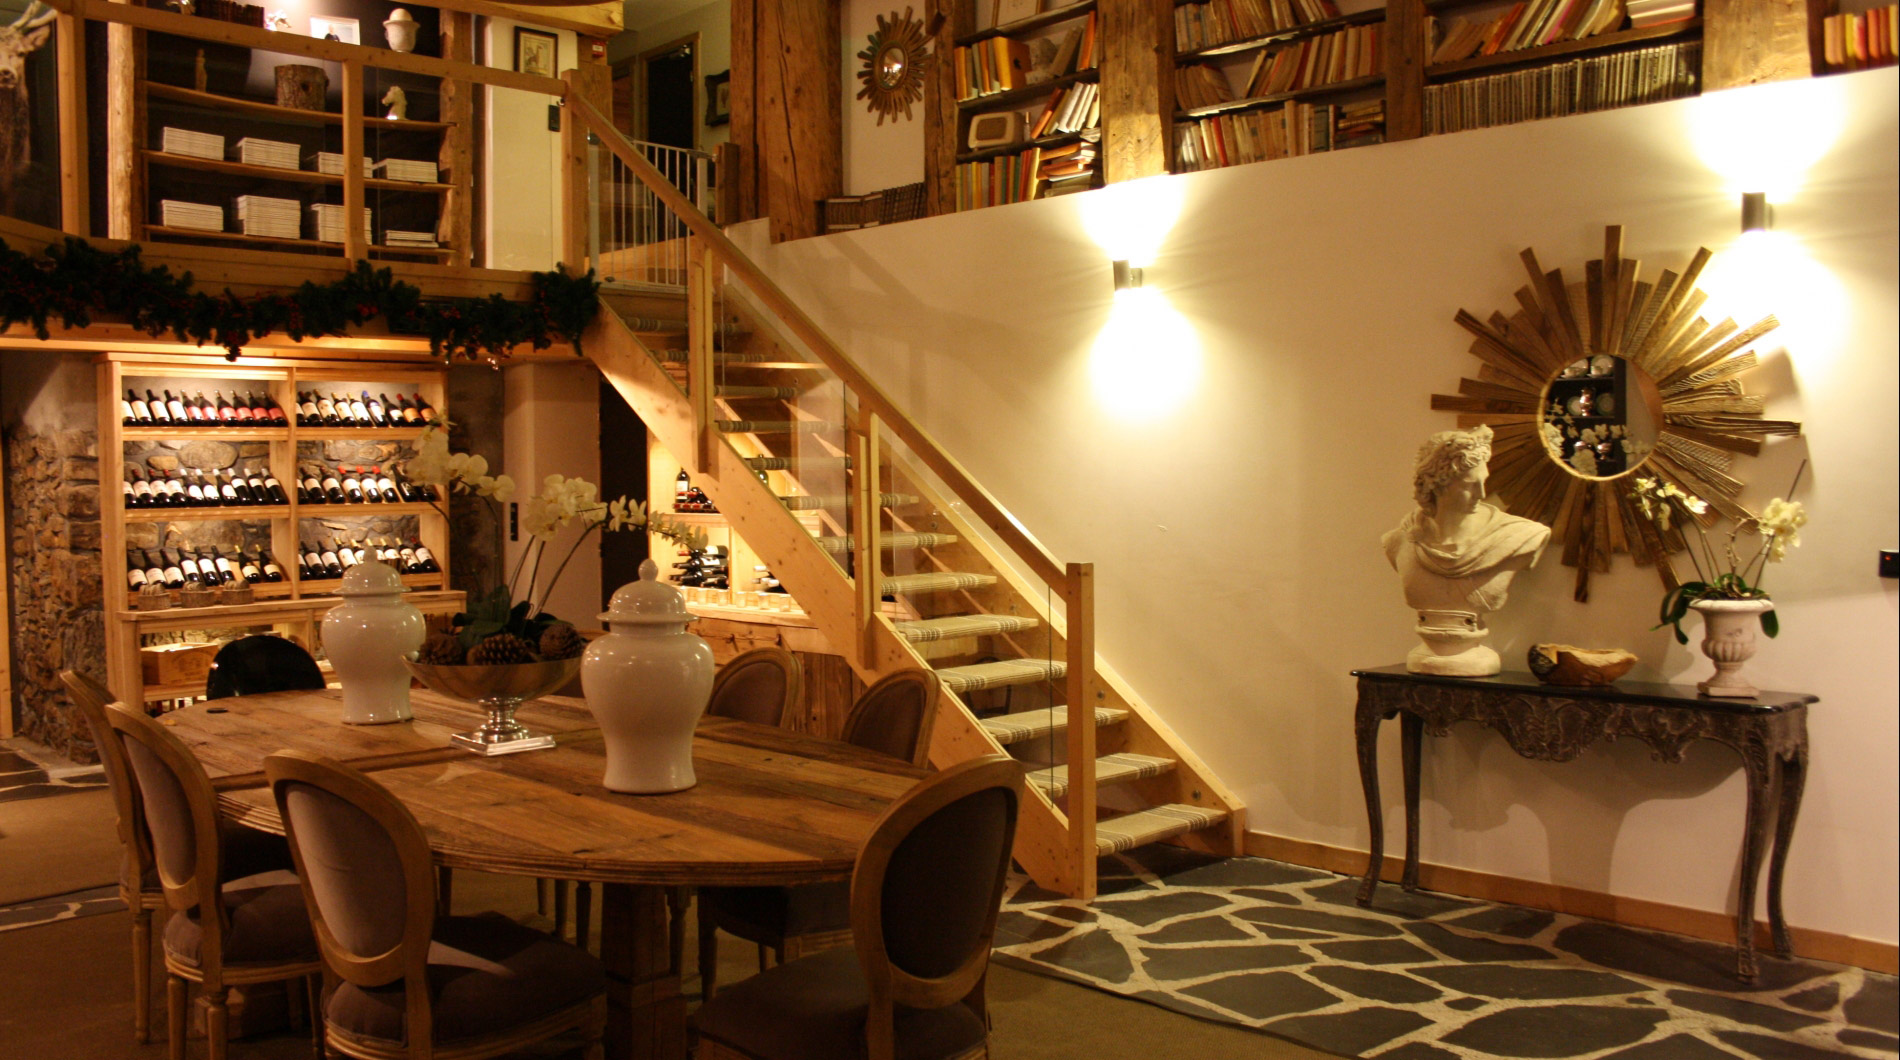 A chalet full of character, open spaces & quality furnishings.